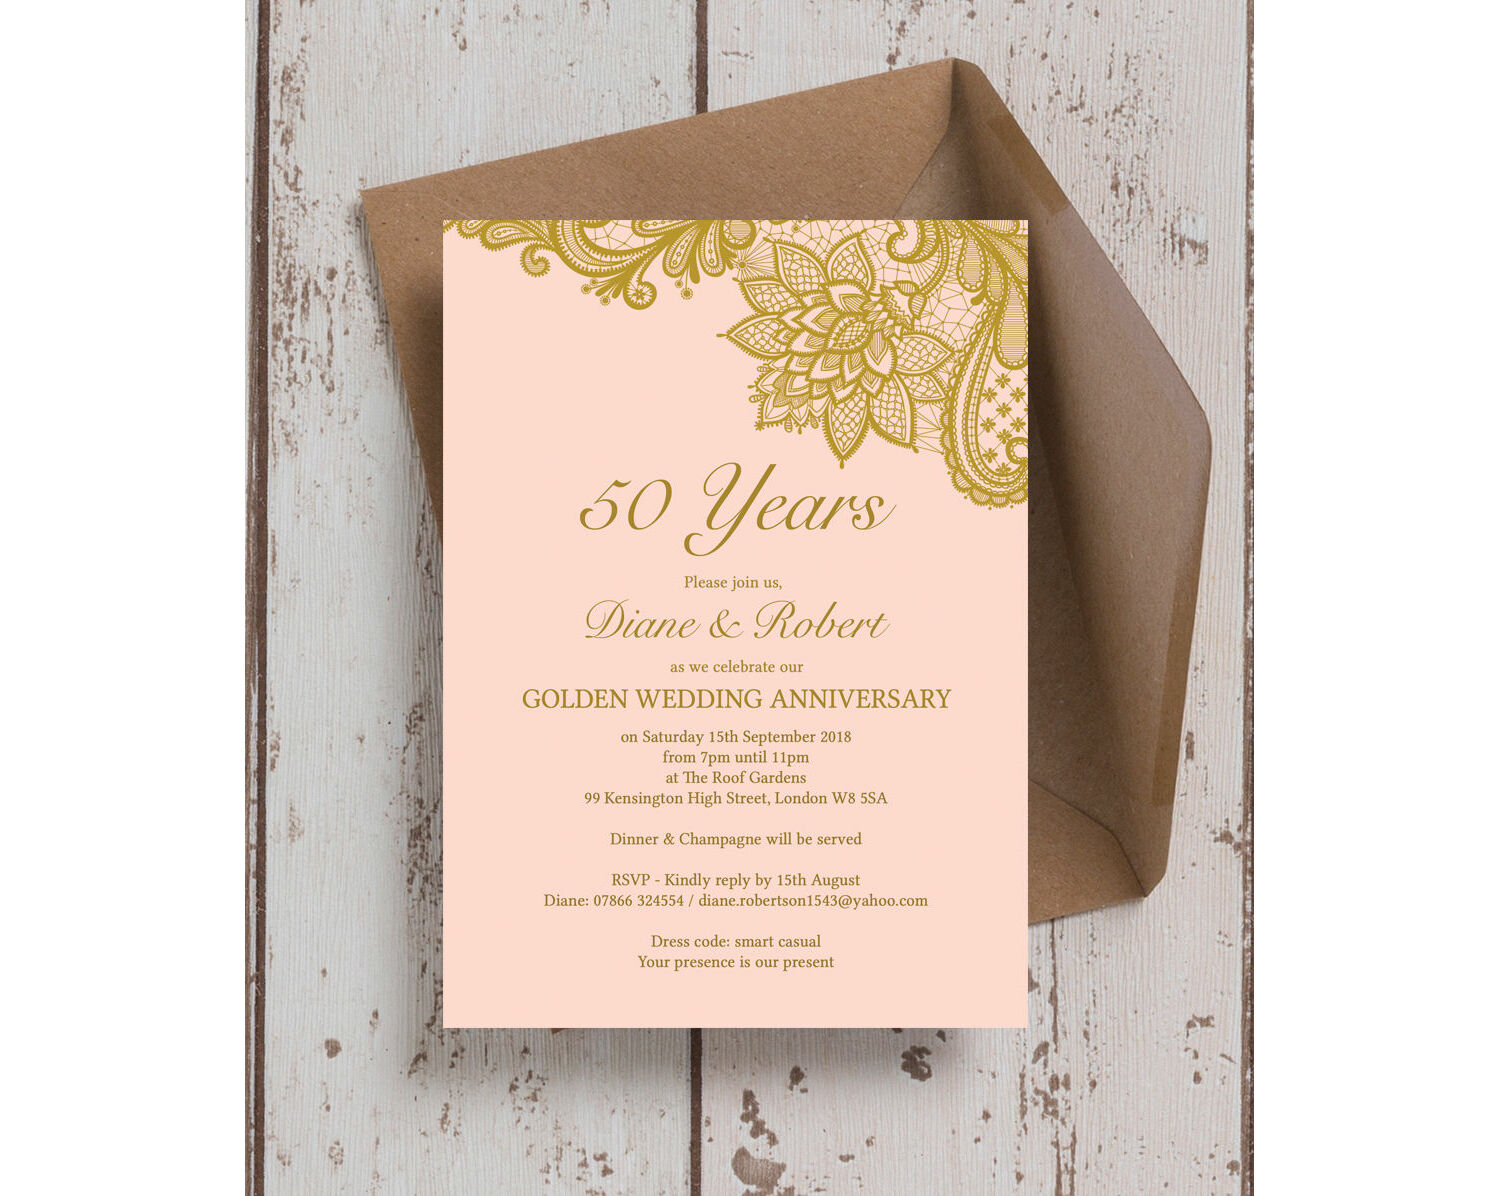 Golden Wedding Anniversary.Gold Lace Inspired 50th Golden Wedding Anniversary Invitation